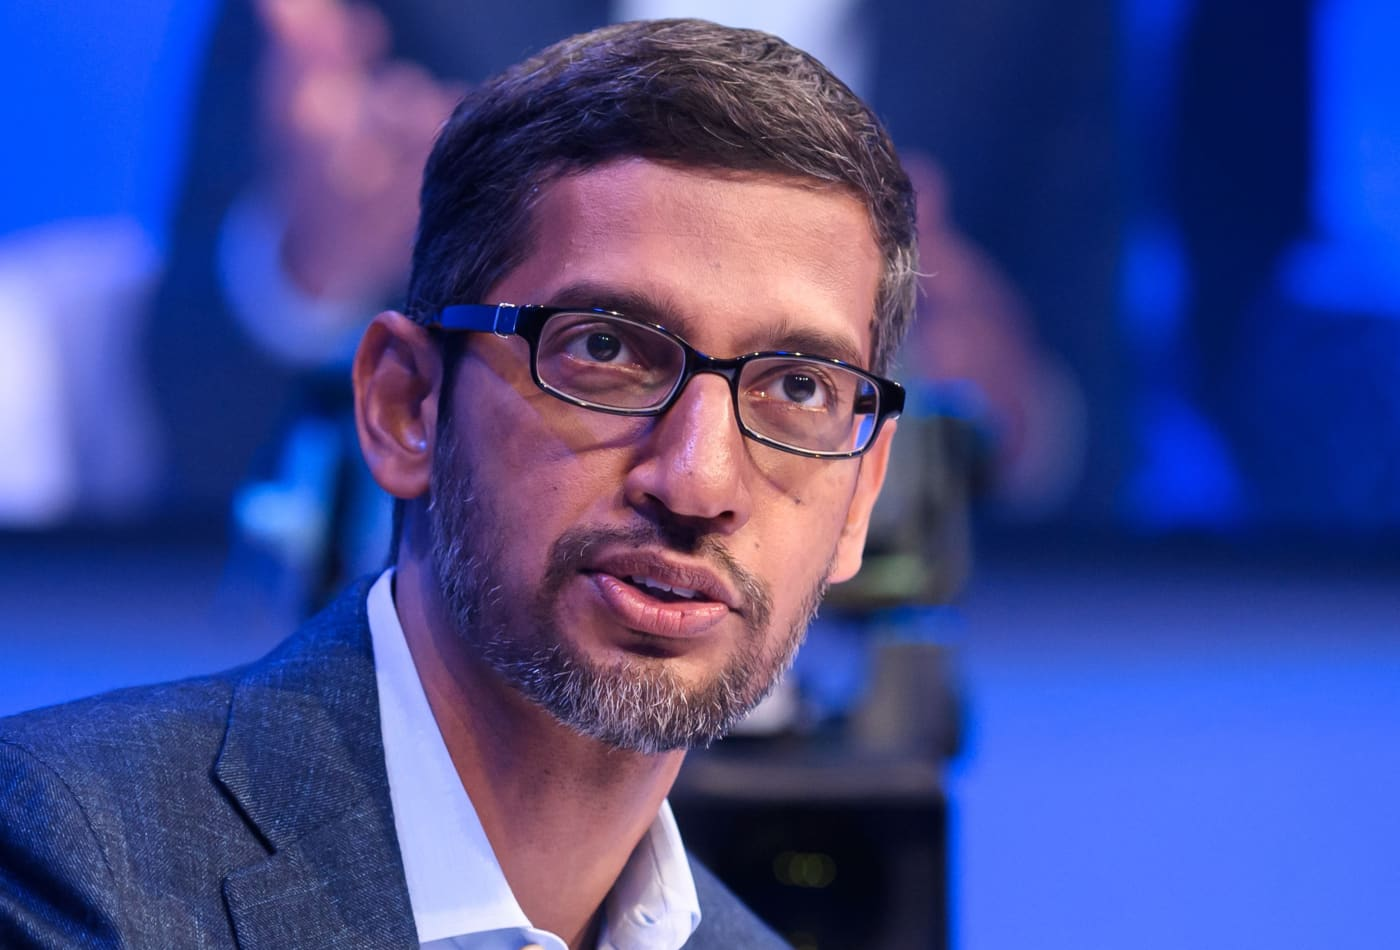 Google CEO Sundar Pichai tells employees 'we are not going back in time' after sexual misconduct settlement